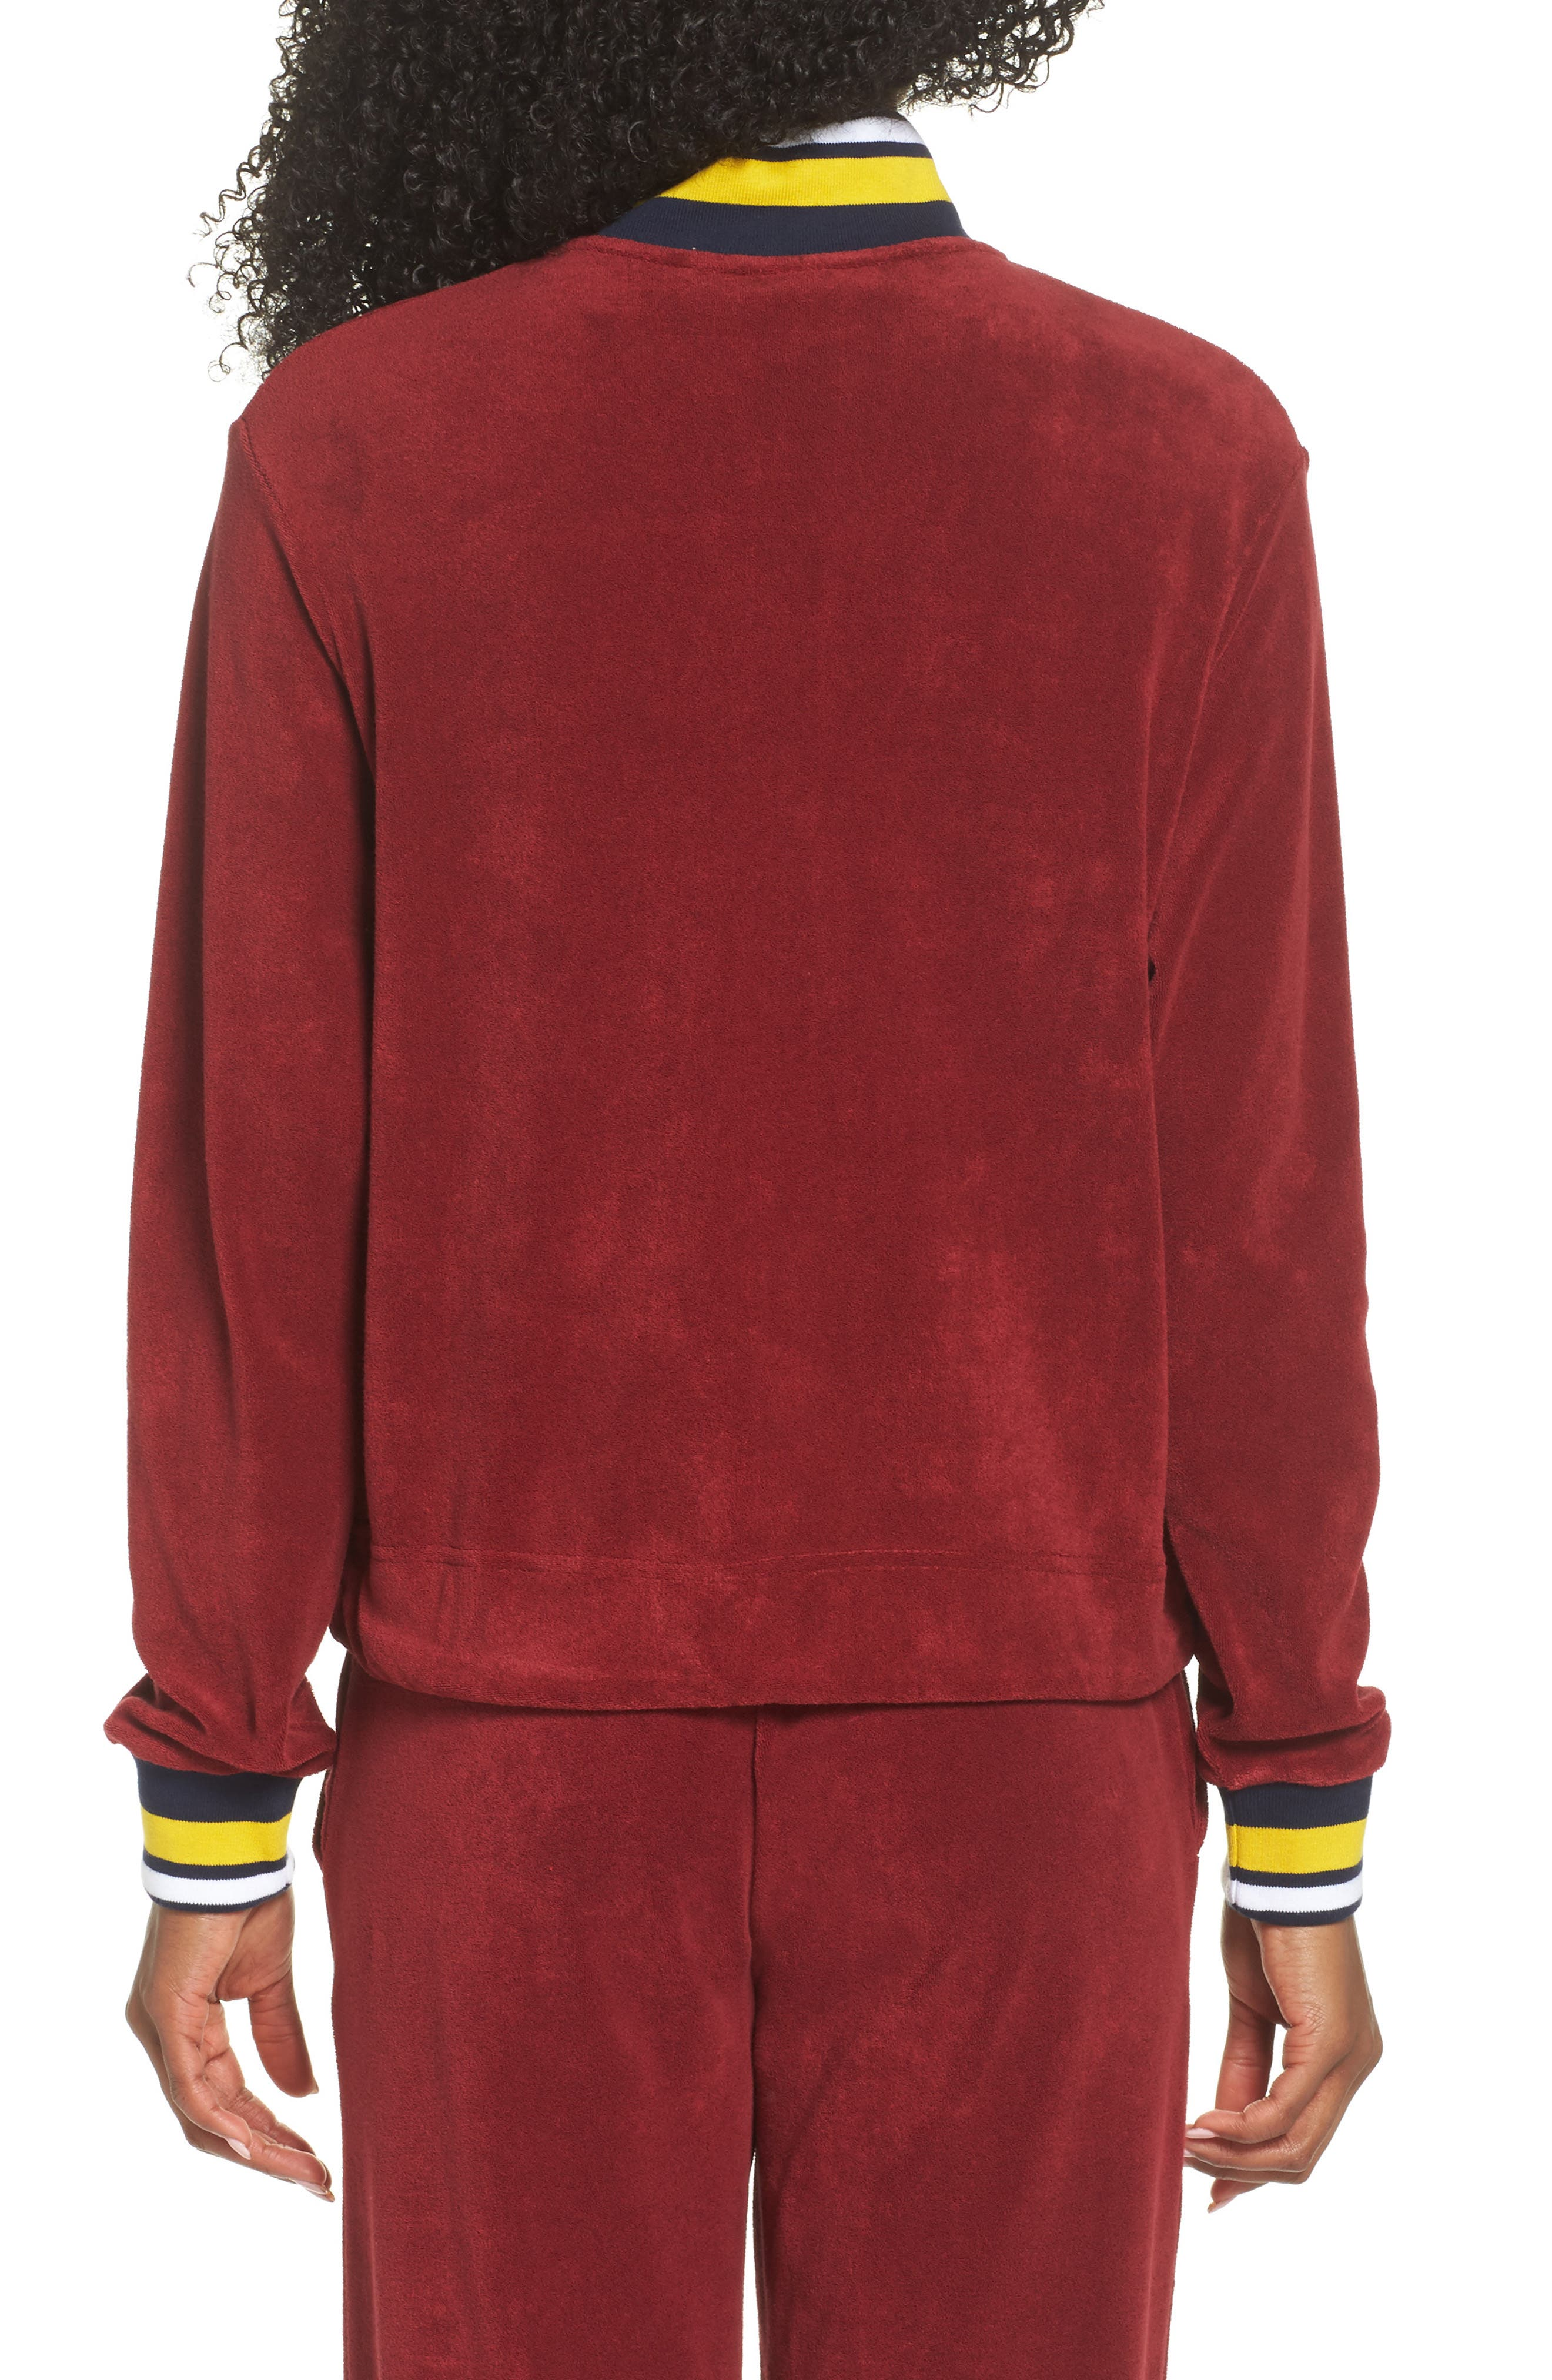 Sportswear French Terry Jacket,                             Alternate thumbnail 2, color,                             Team Red/ Team Red/ Obsidian